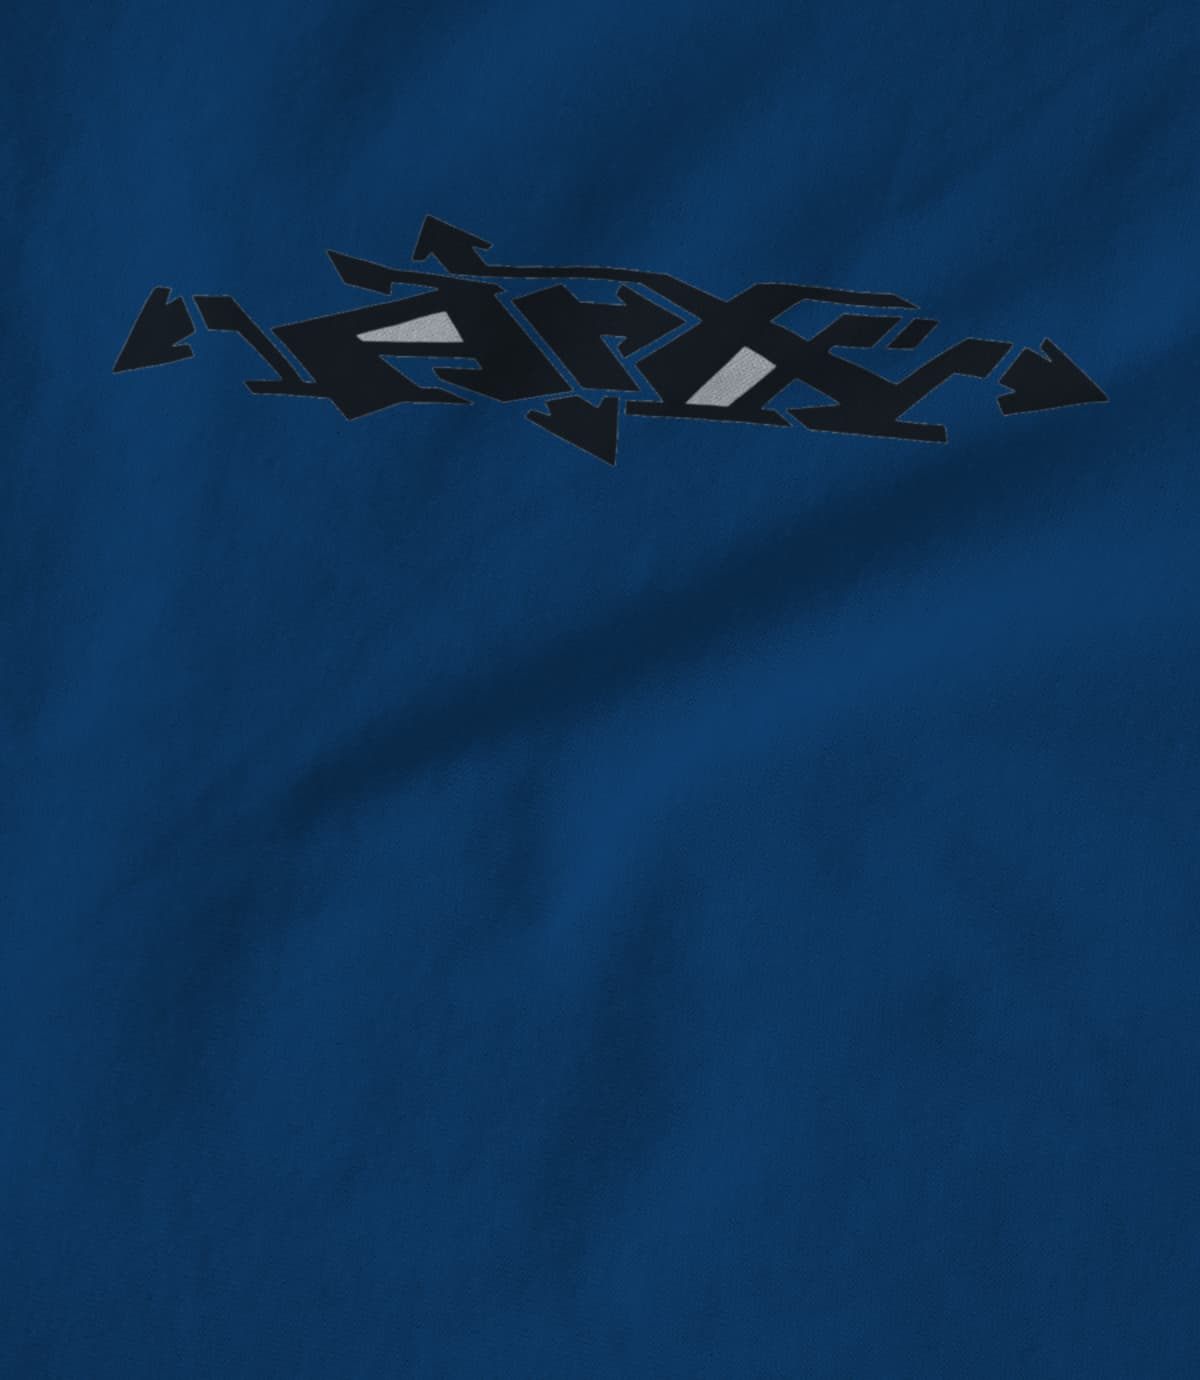 Architecture recordings arx graff   blue tee 1596461067